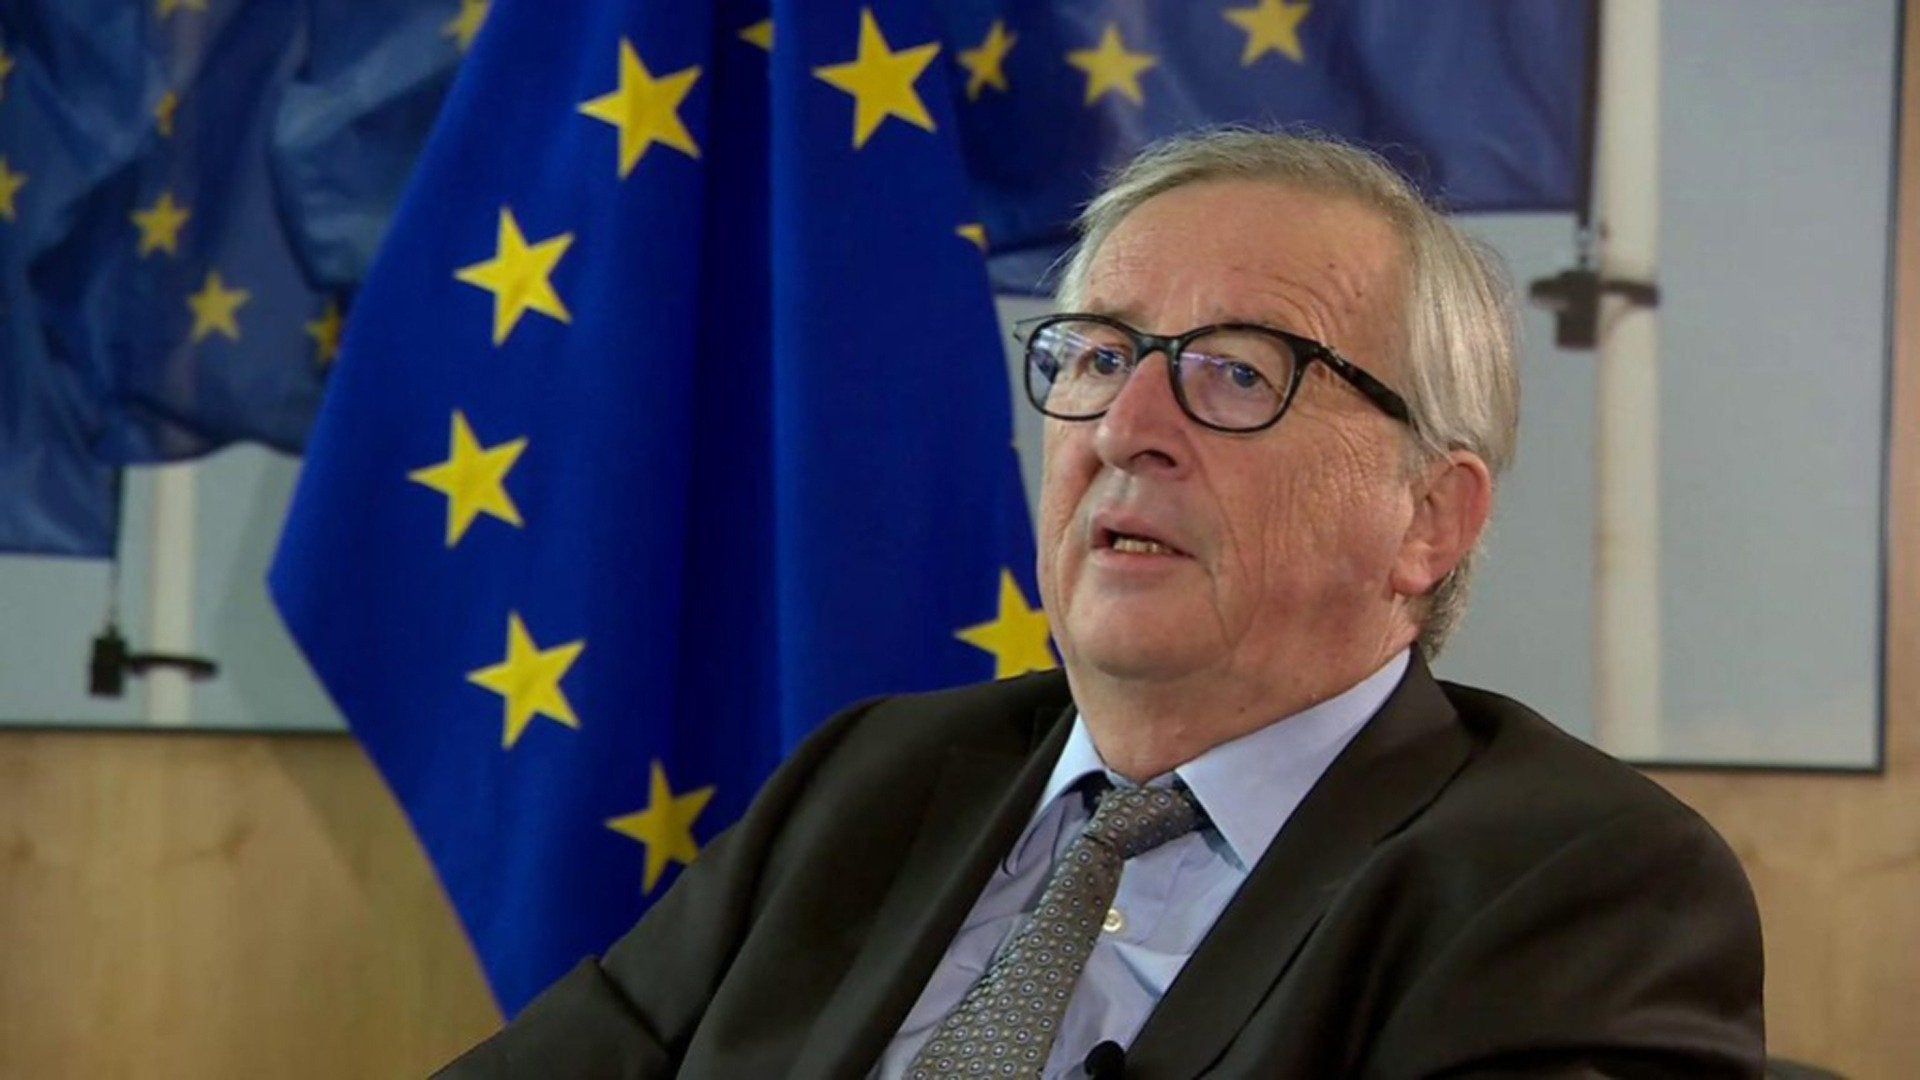 At Europe's Helm: An Interview with Jean-Claude Juncker